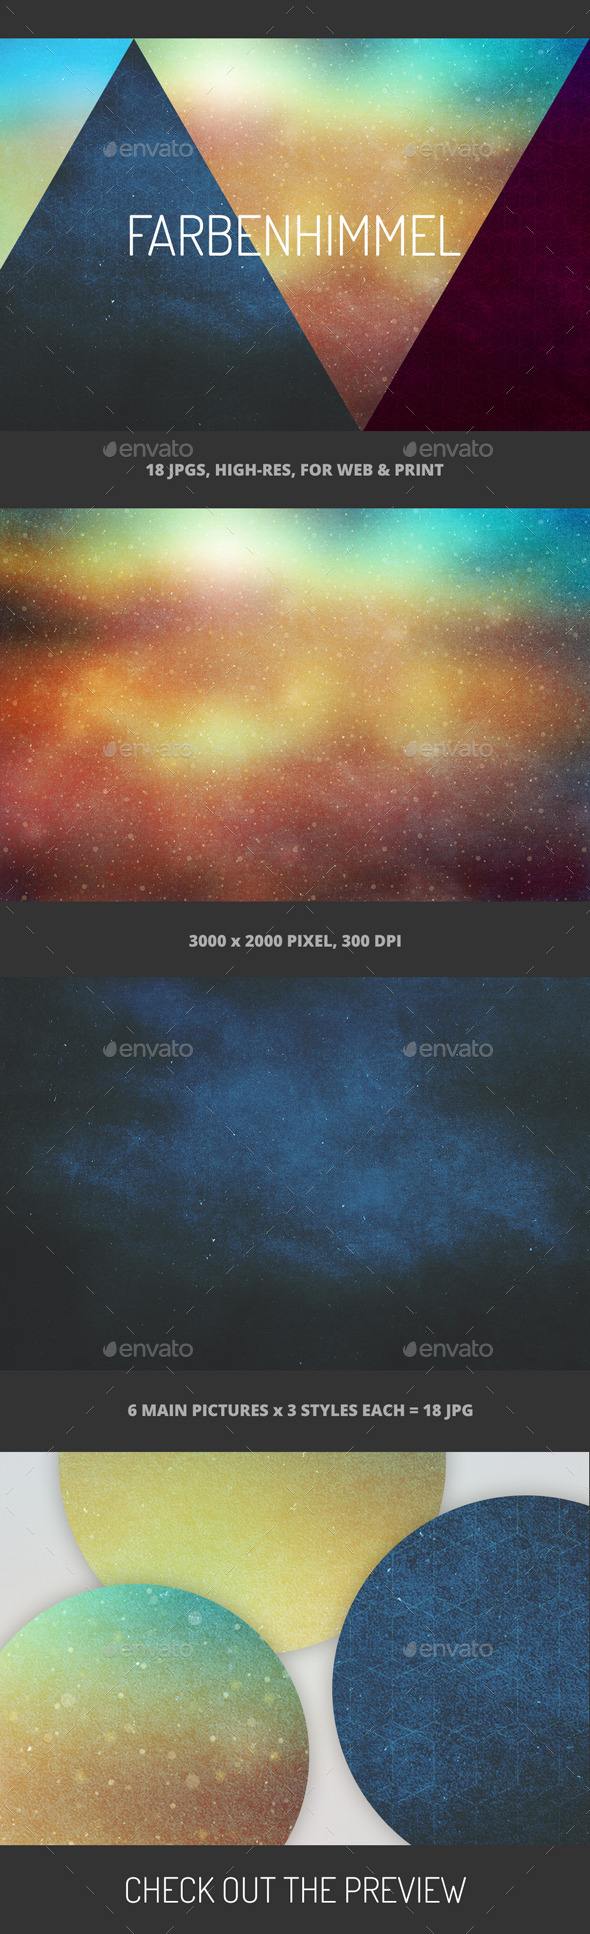 GraphicRiver Farbenhimmel 18 High-Res Images 10068818